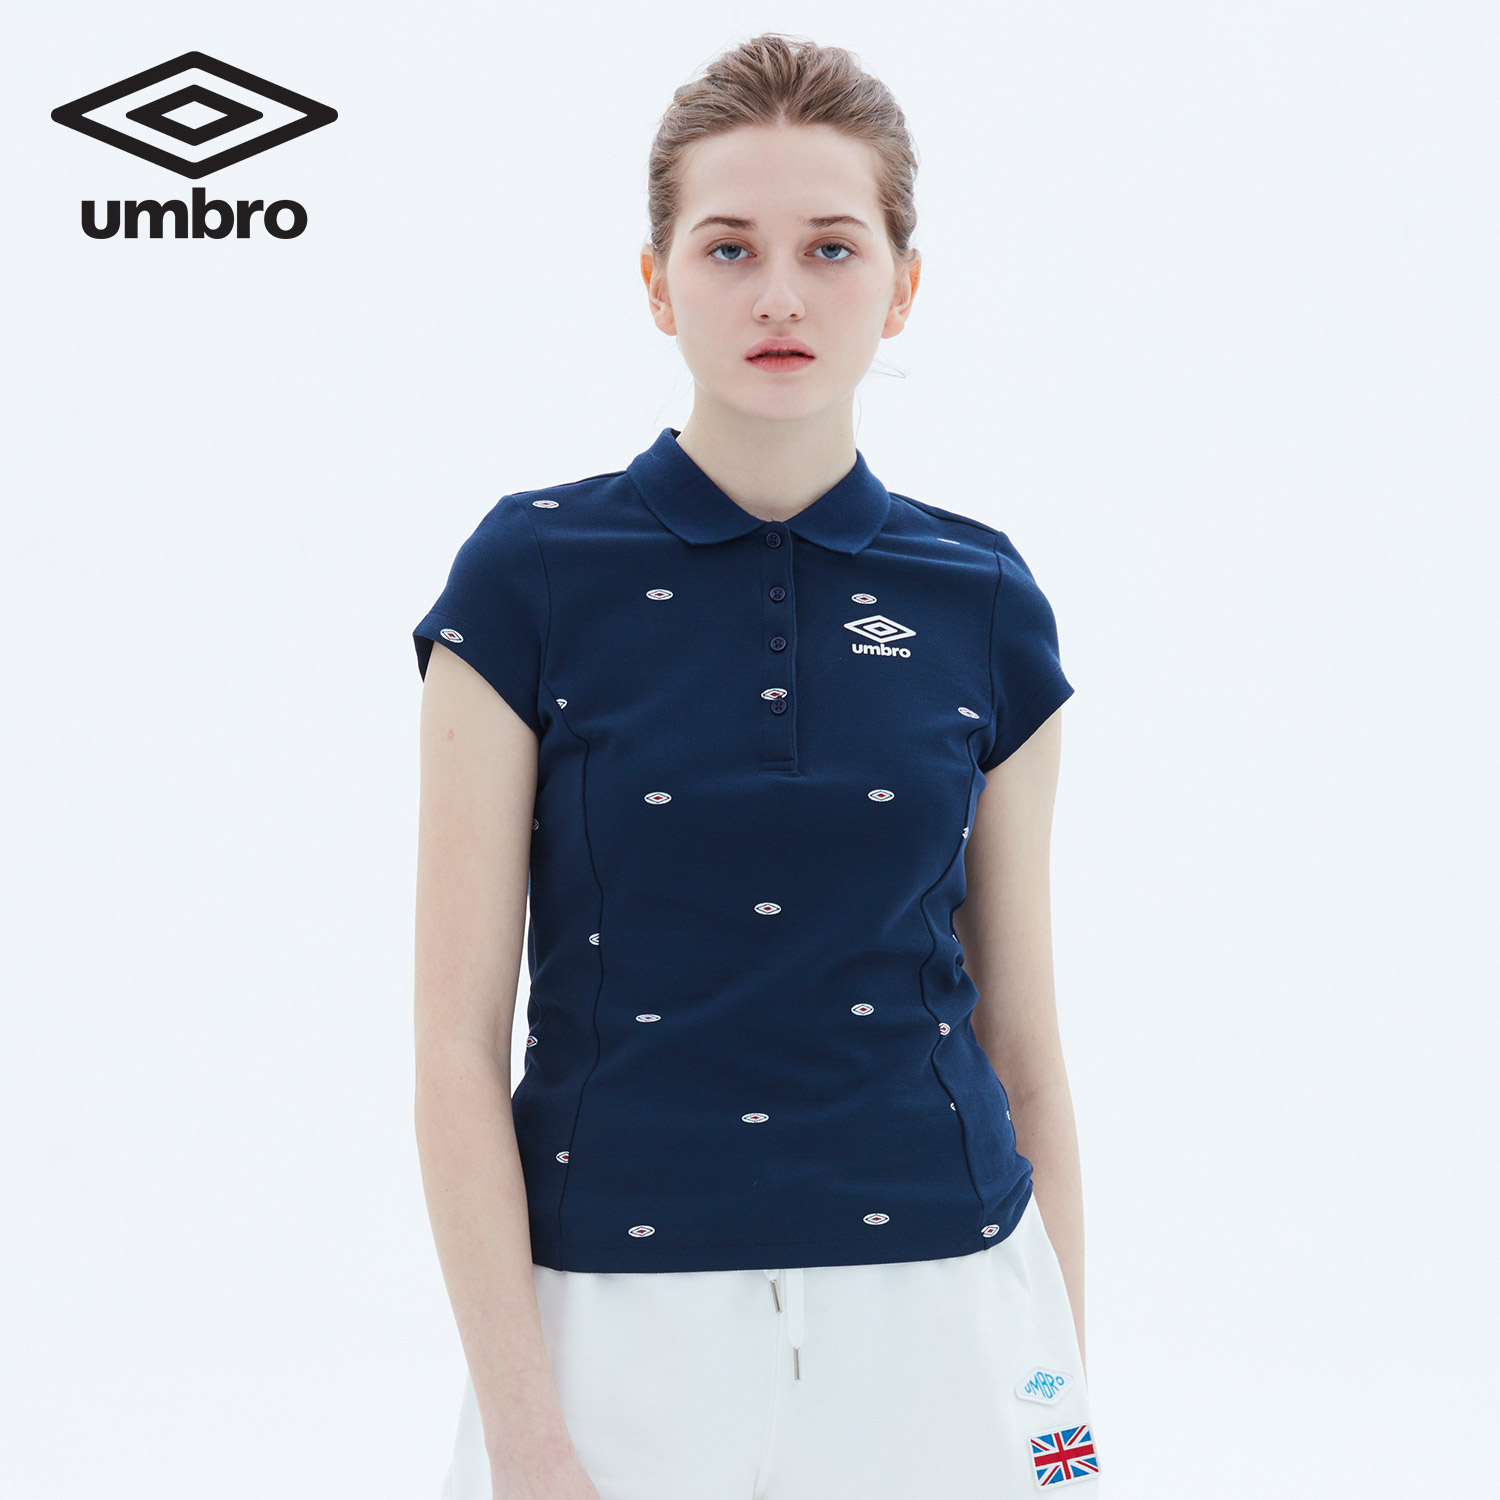 Umbro Women New Summer Short Sleeve Polo Shirt Sports T-shirt Sportswear Tracksuit T-shirt Tee Tops UCC63102